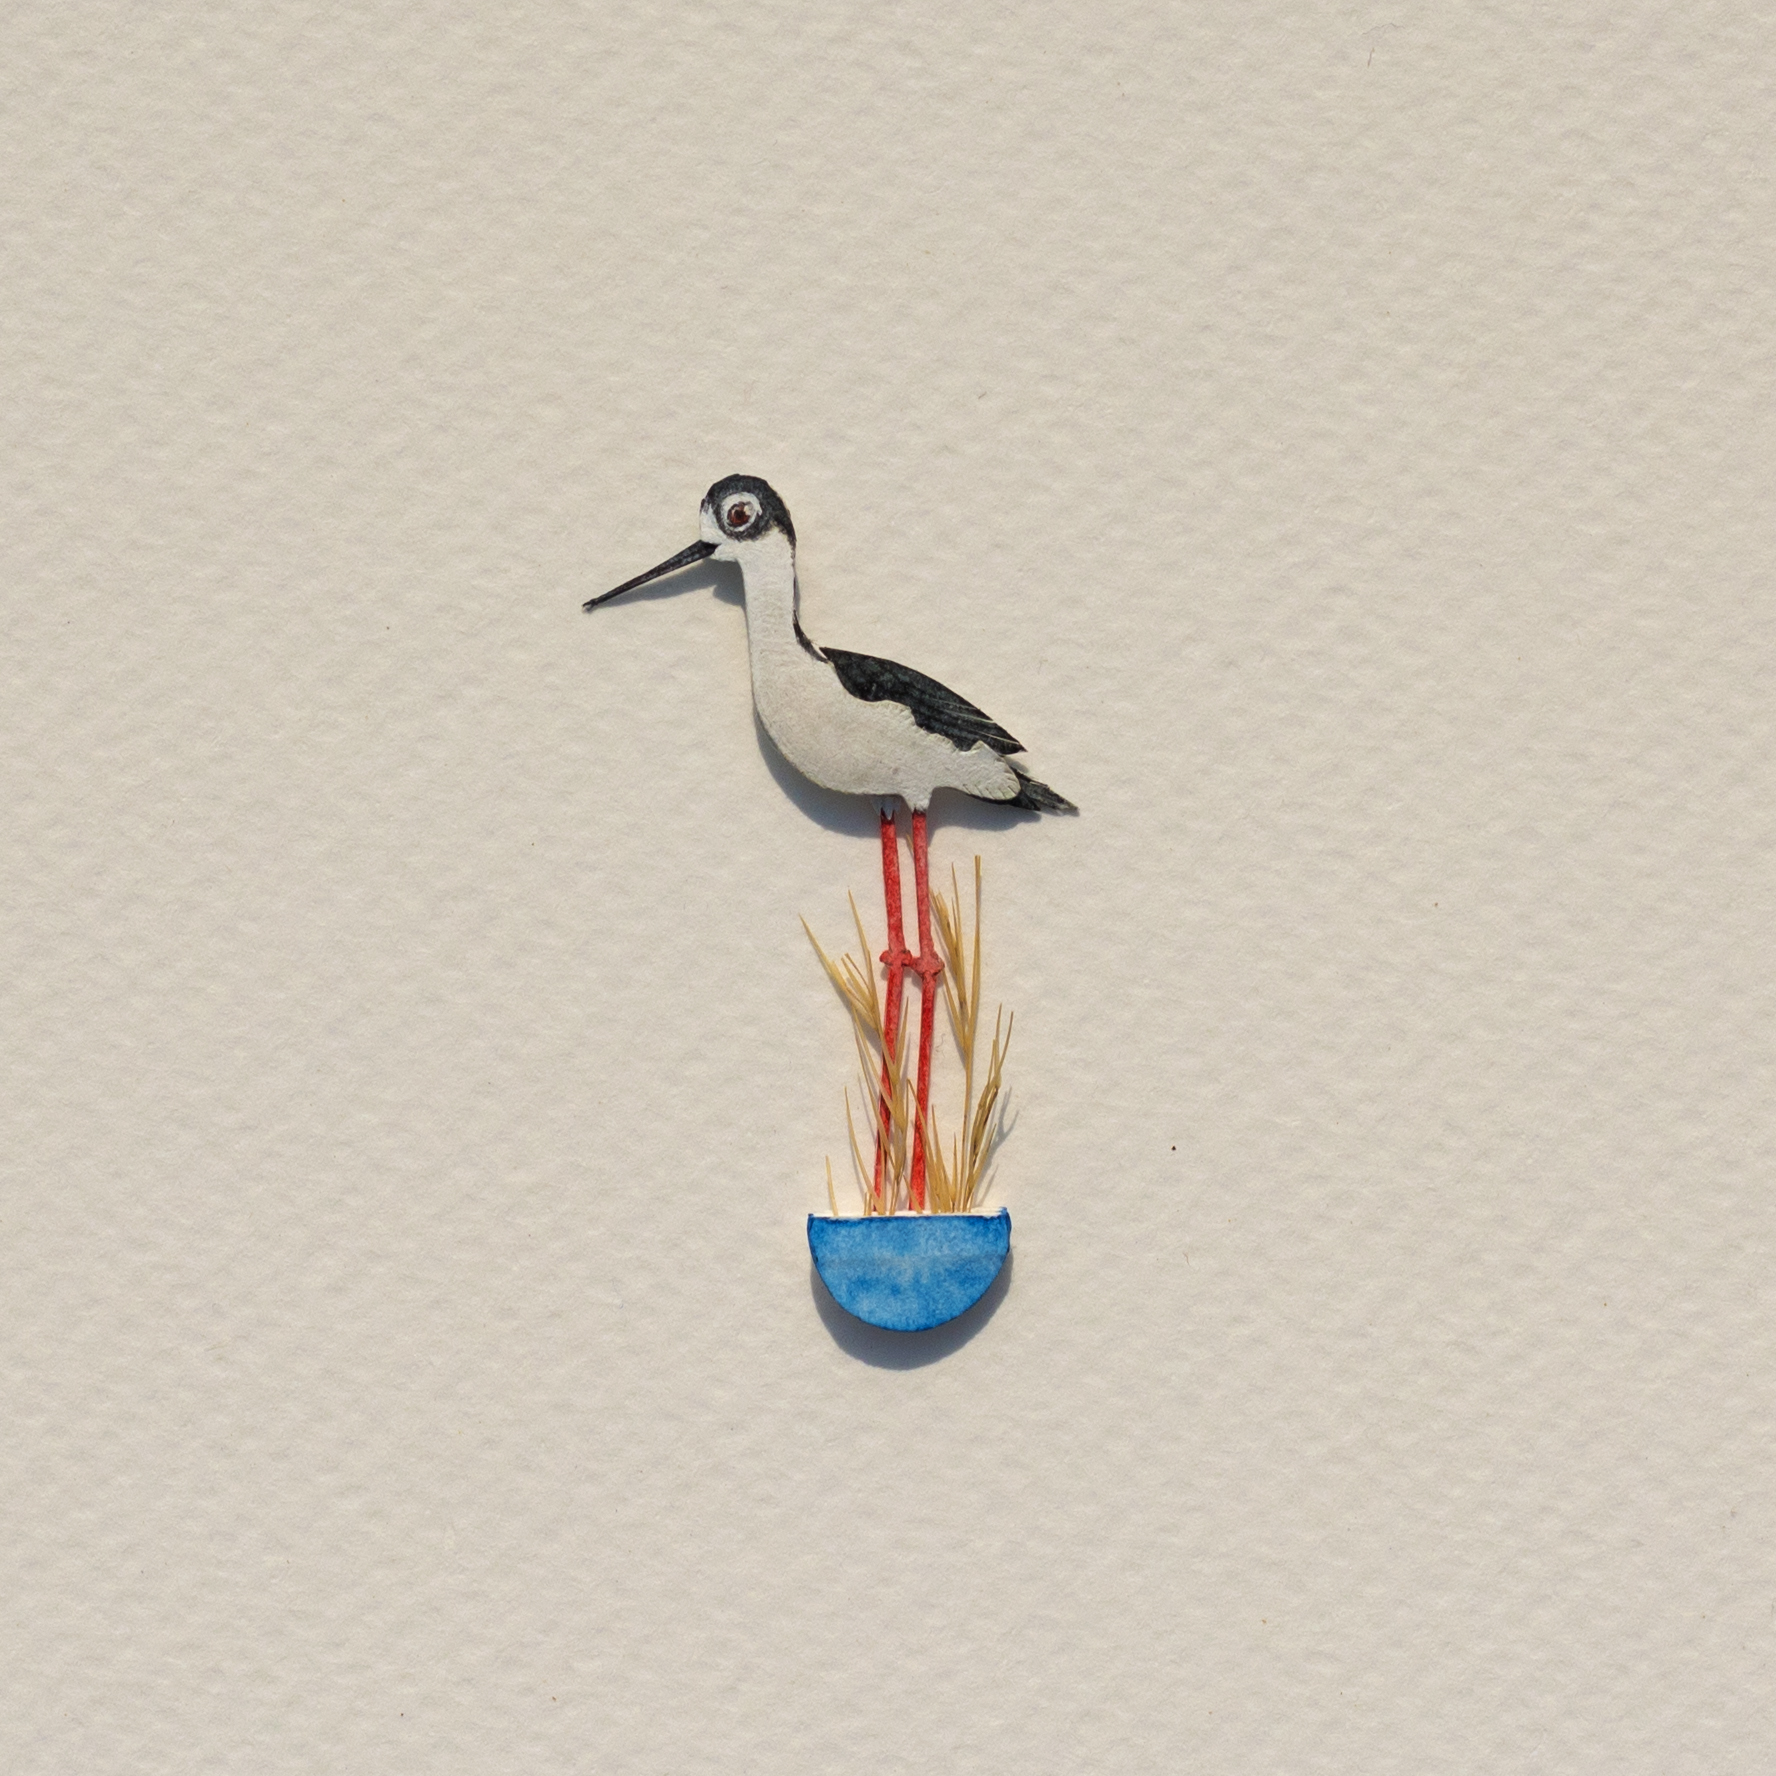 Miniature Bird Illustrations in Cut Paper Beautifully Detailed in Watercolor